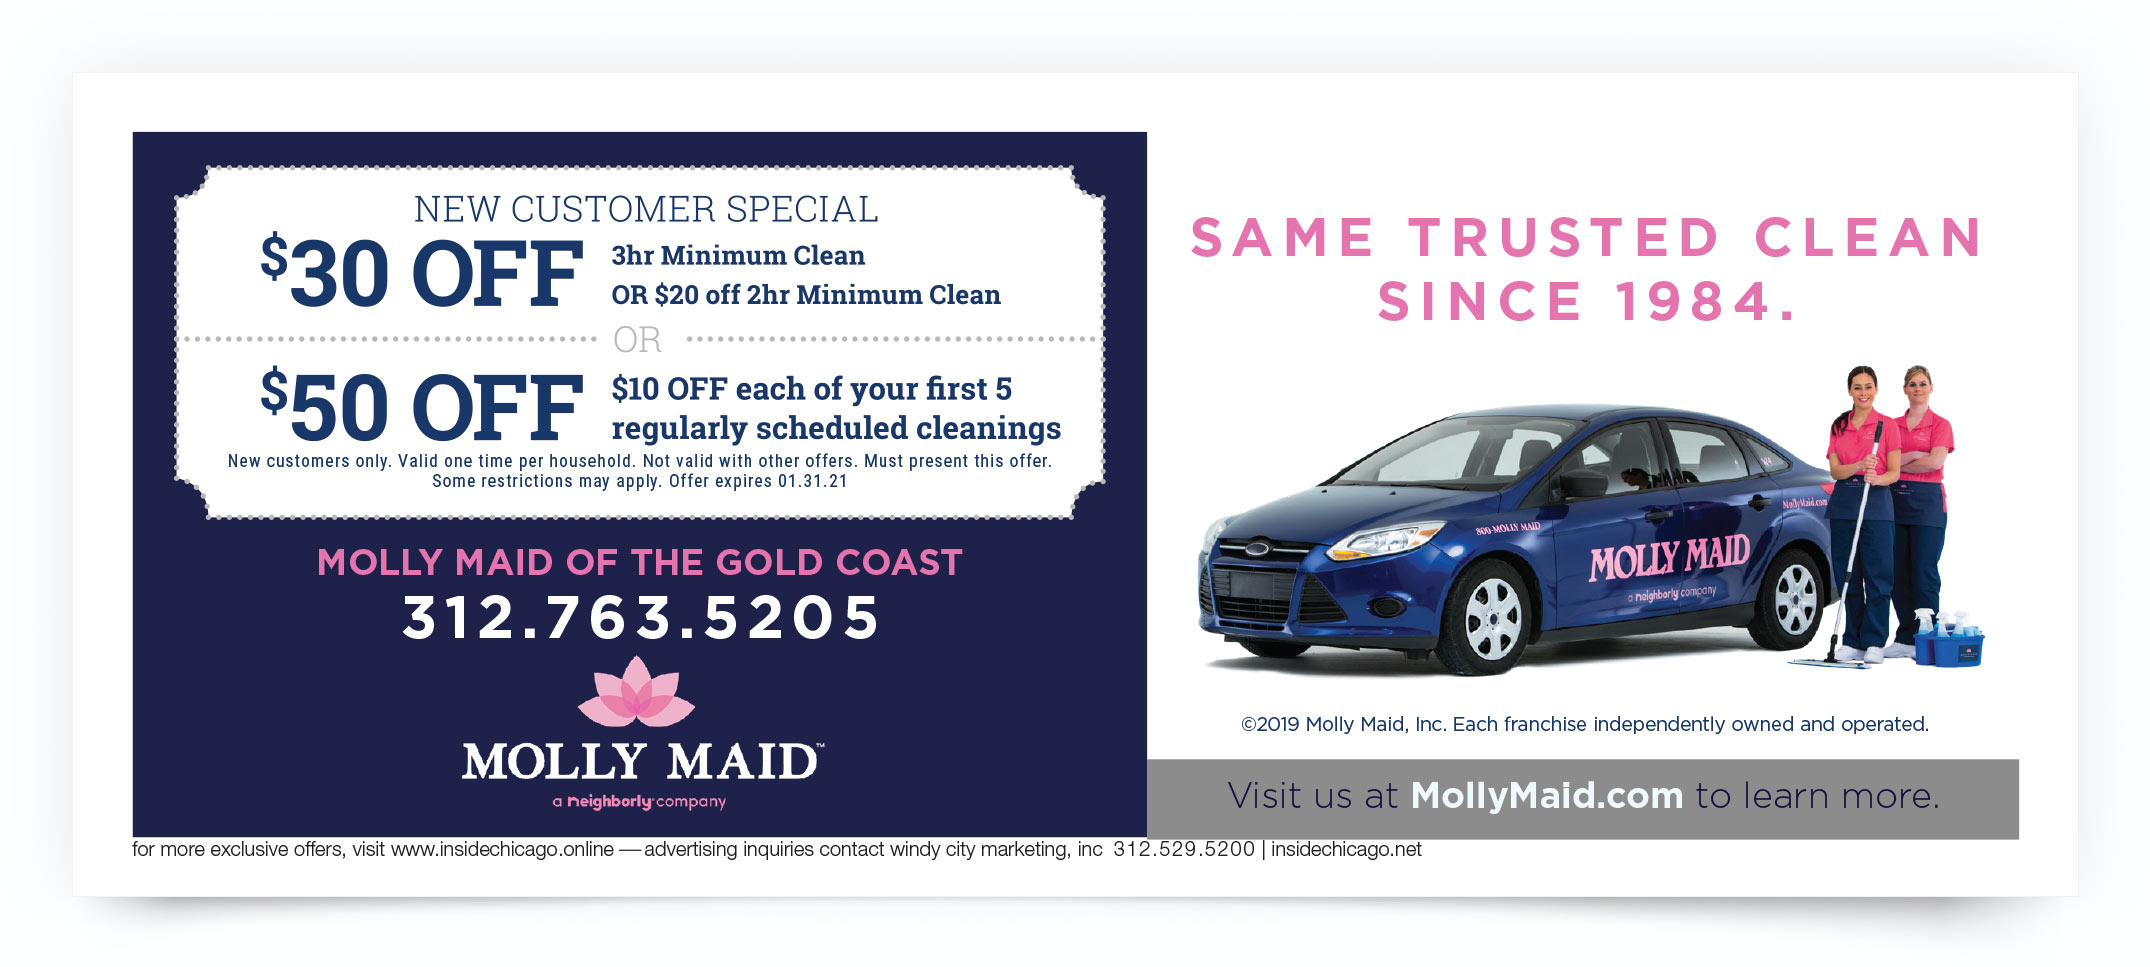 Molly Maid of the Gold Coast Chicago Coupon Offer